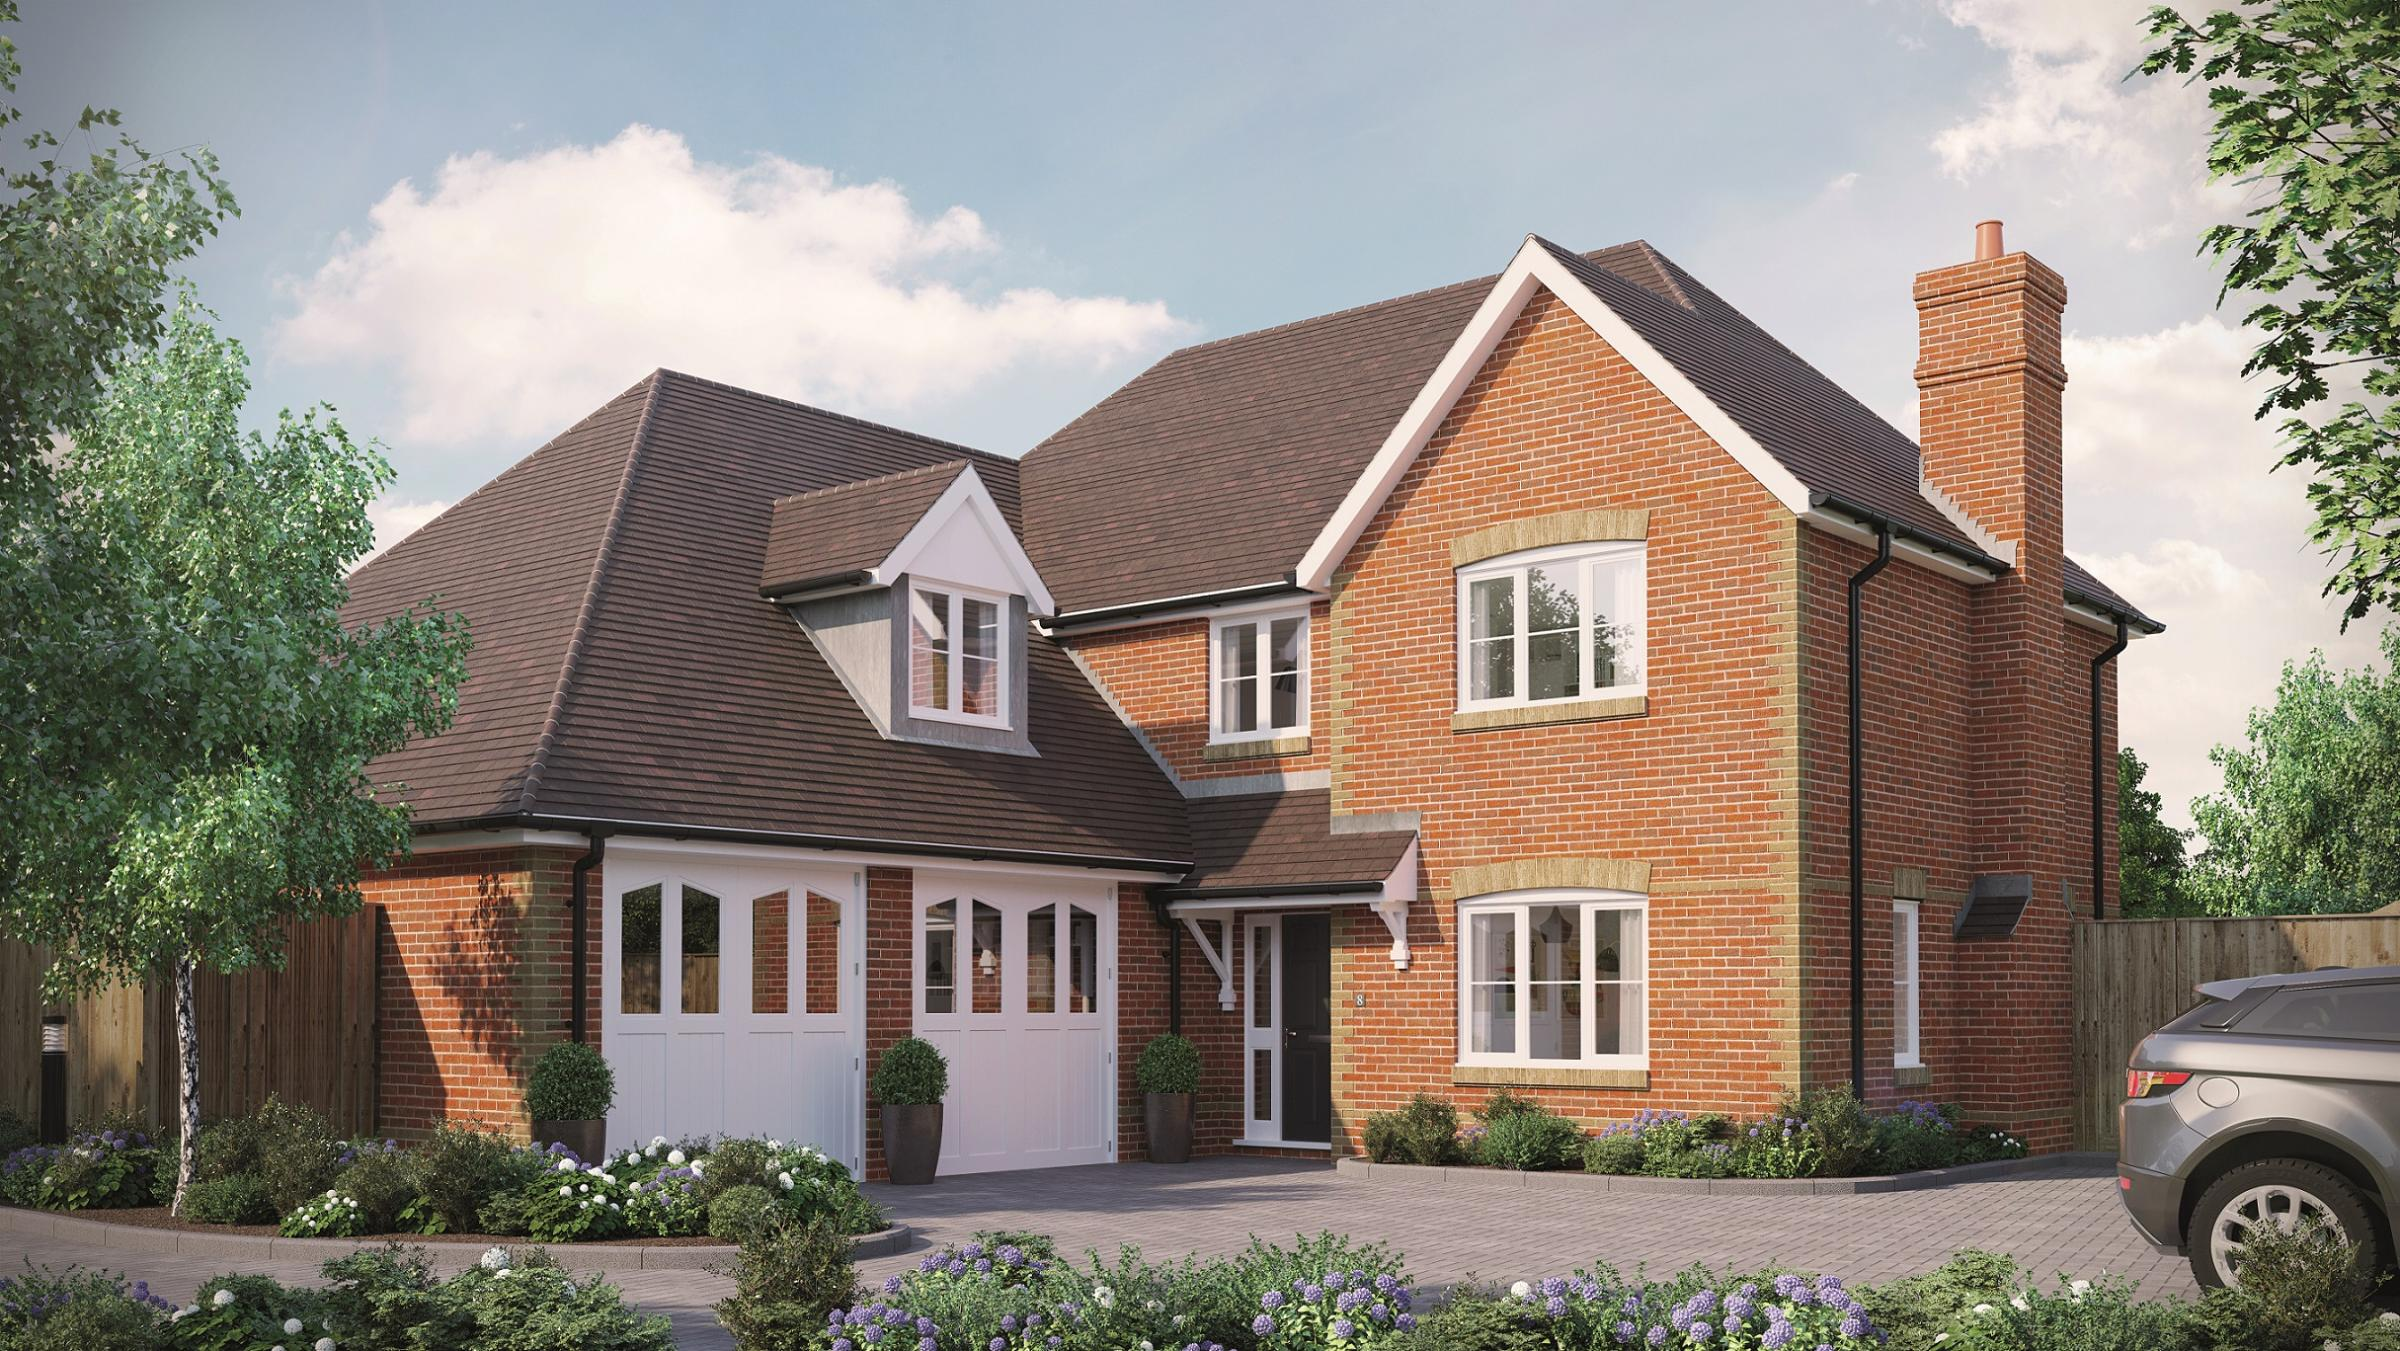 A computer generated image of plot 8, a five-bedroom detached house at The Mulberries in Whitchurch, by Metis Homes.